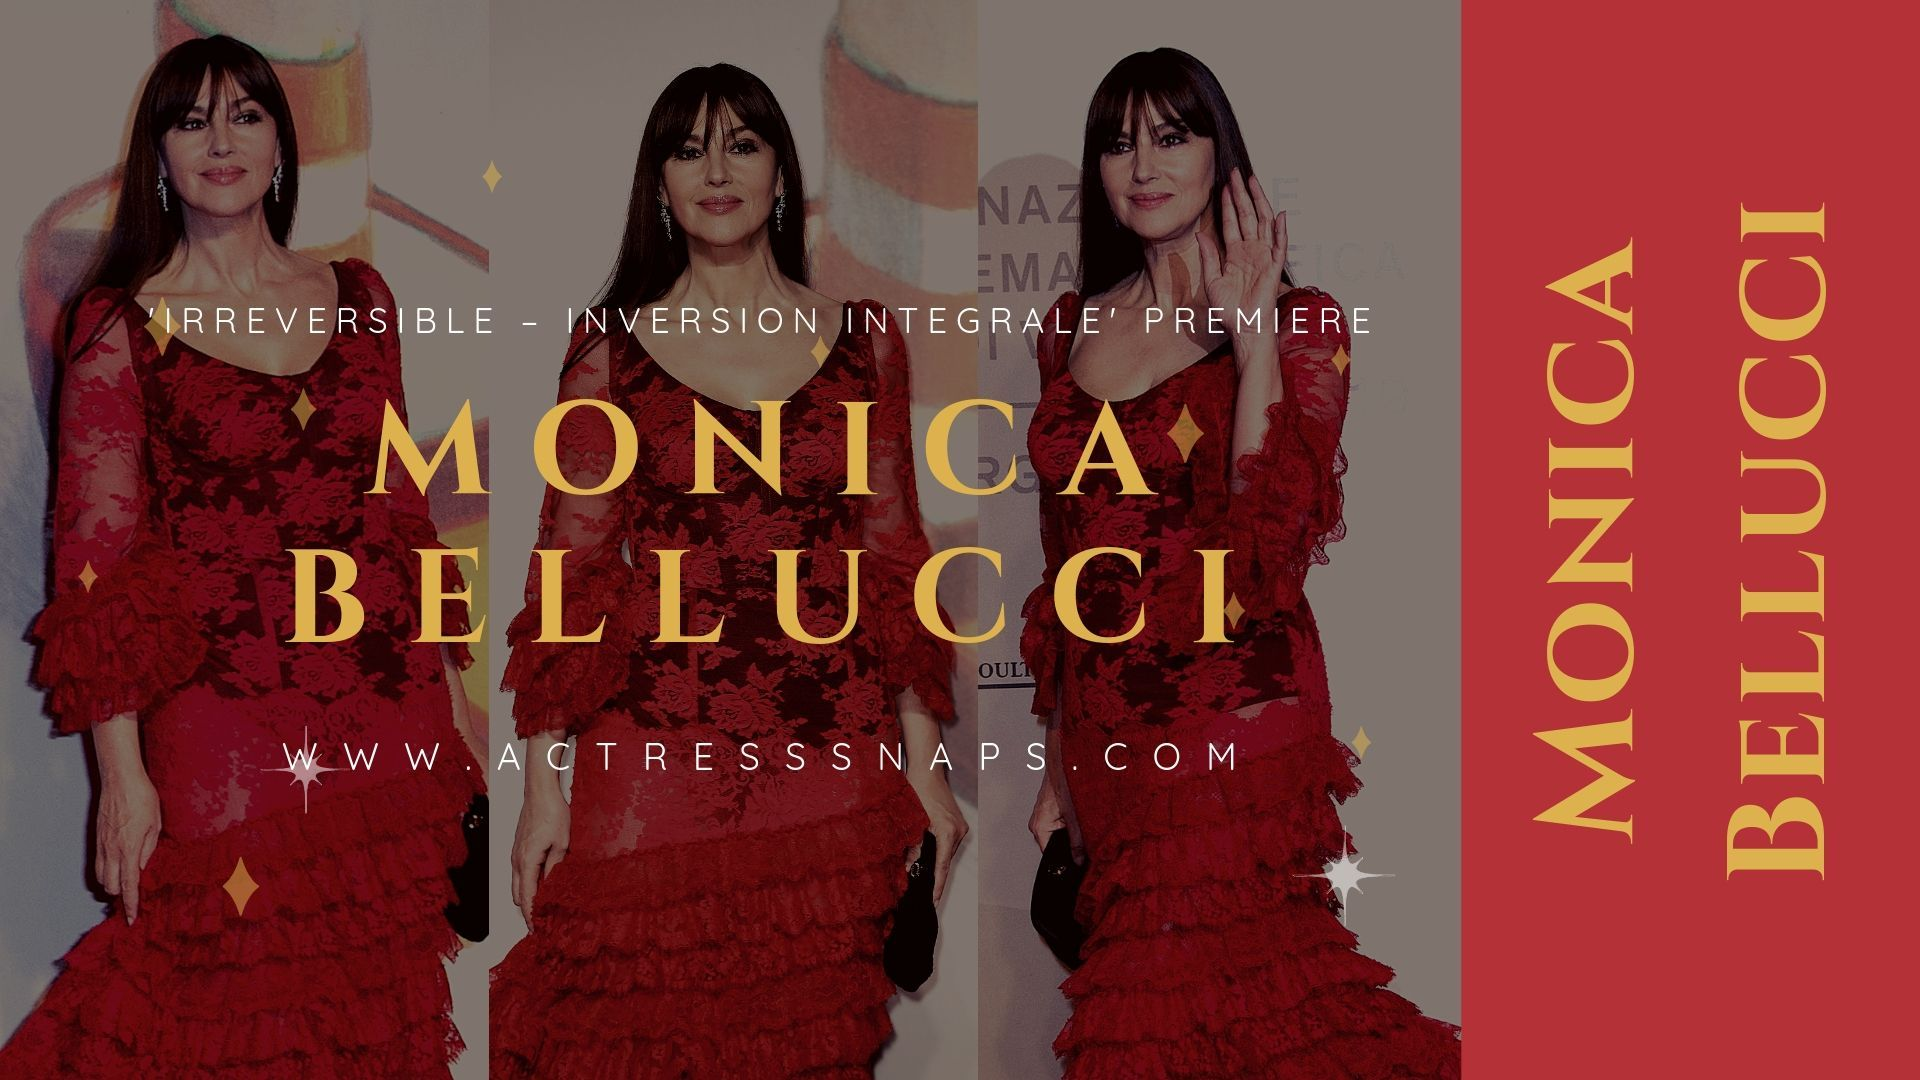 Monica Bellucci Photos -  'Irreversible – Inversion Integrale' Premiere - Sexy Actress Pictures | Hot Actress Pictures - ActressSnaps.com